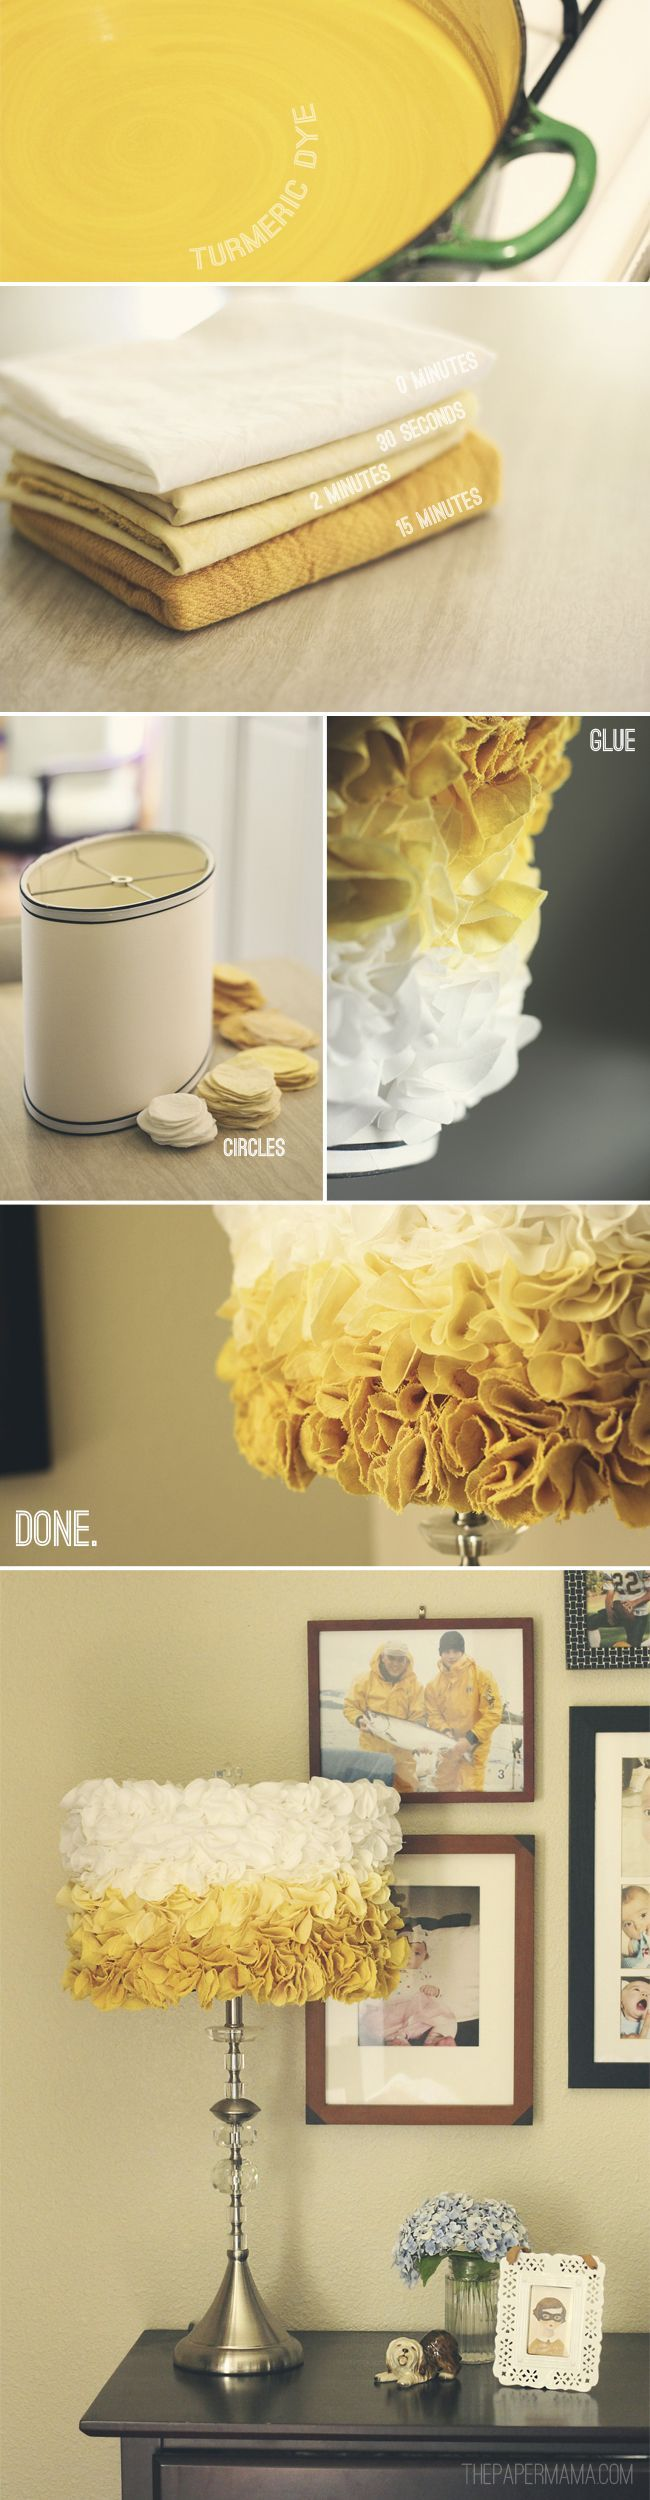 Charming Ideas Better Homes And Gardens Lamp Shades. Do It Yourself  Lampshade Tutorials Fabric LampshadeLampshade RedoHome And GardenBetter 586 best lamps and lighting images on Pinterest Chandeliers